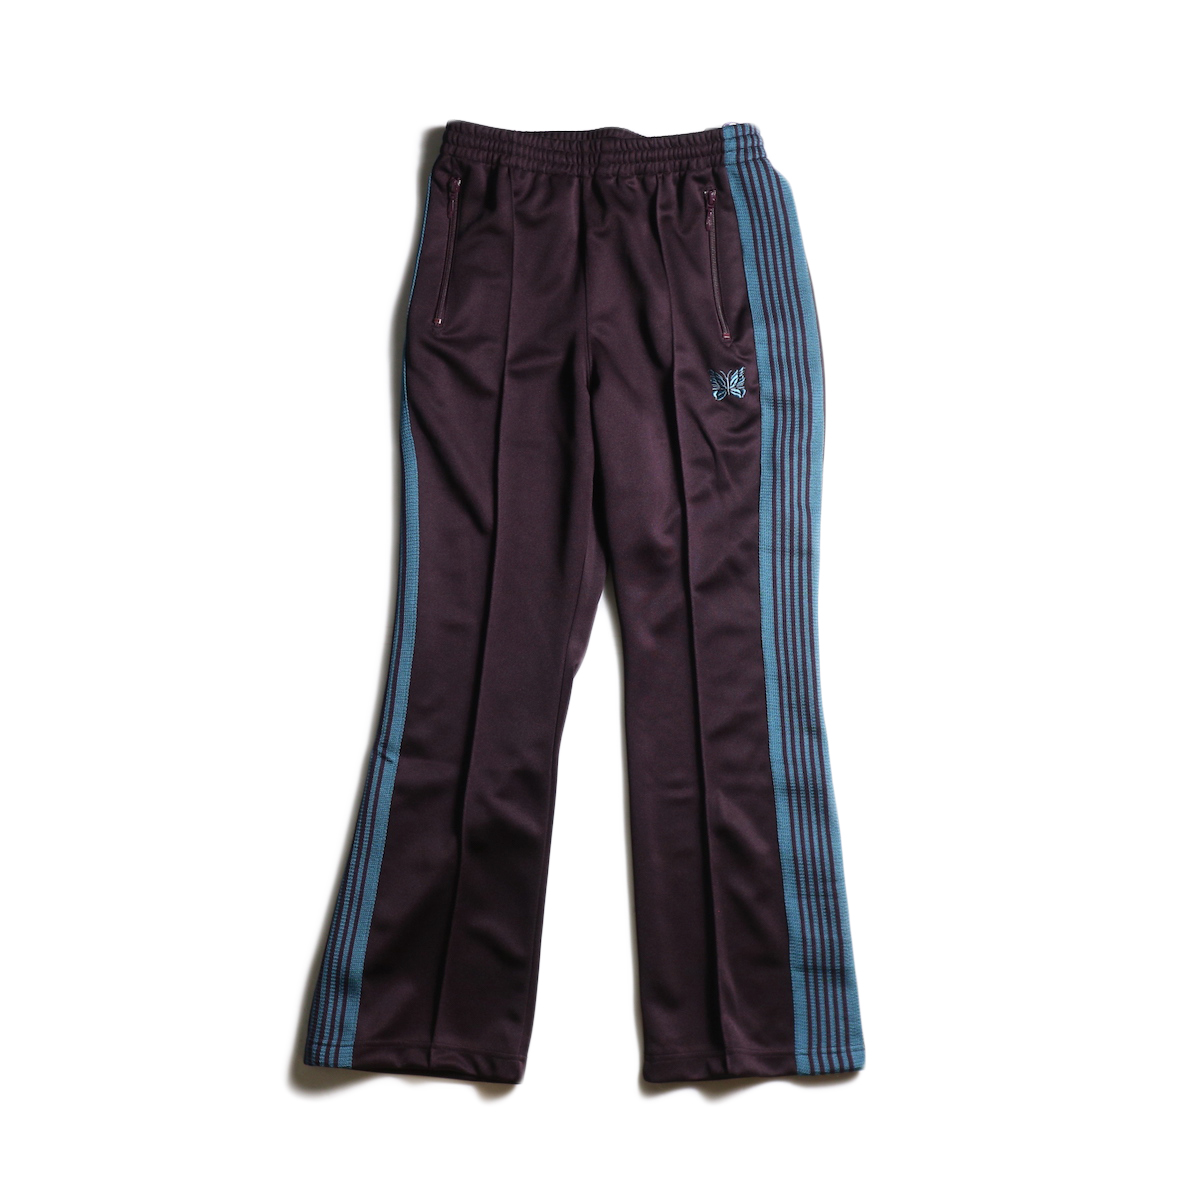 Needles / Boot-Cut Track Pant -Poly Smooth (Bordeaux)